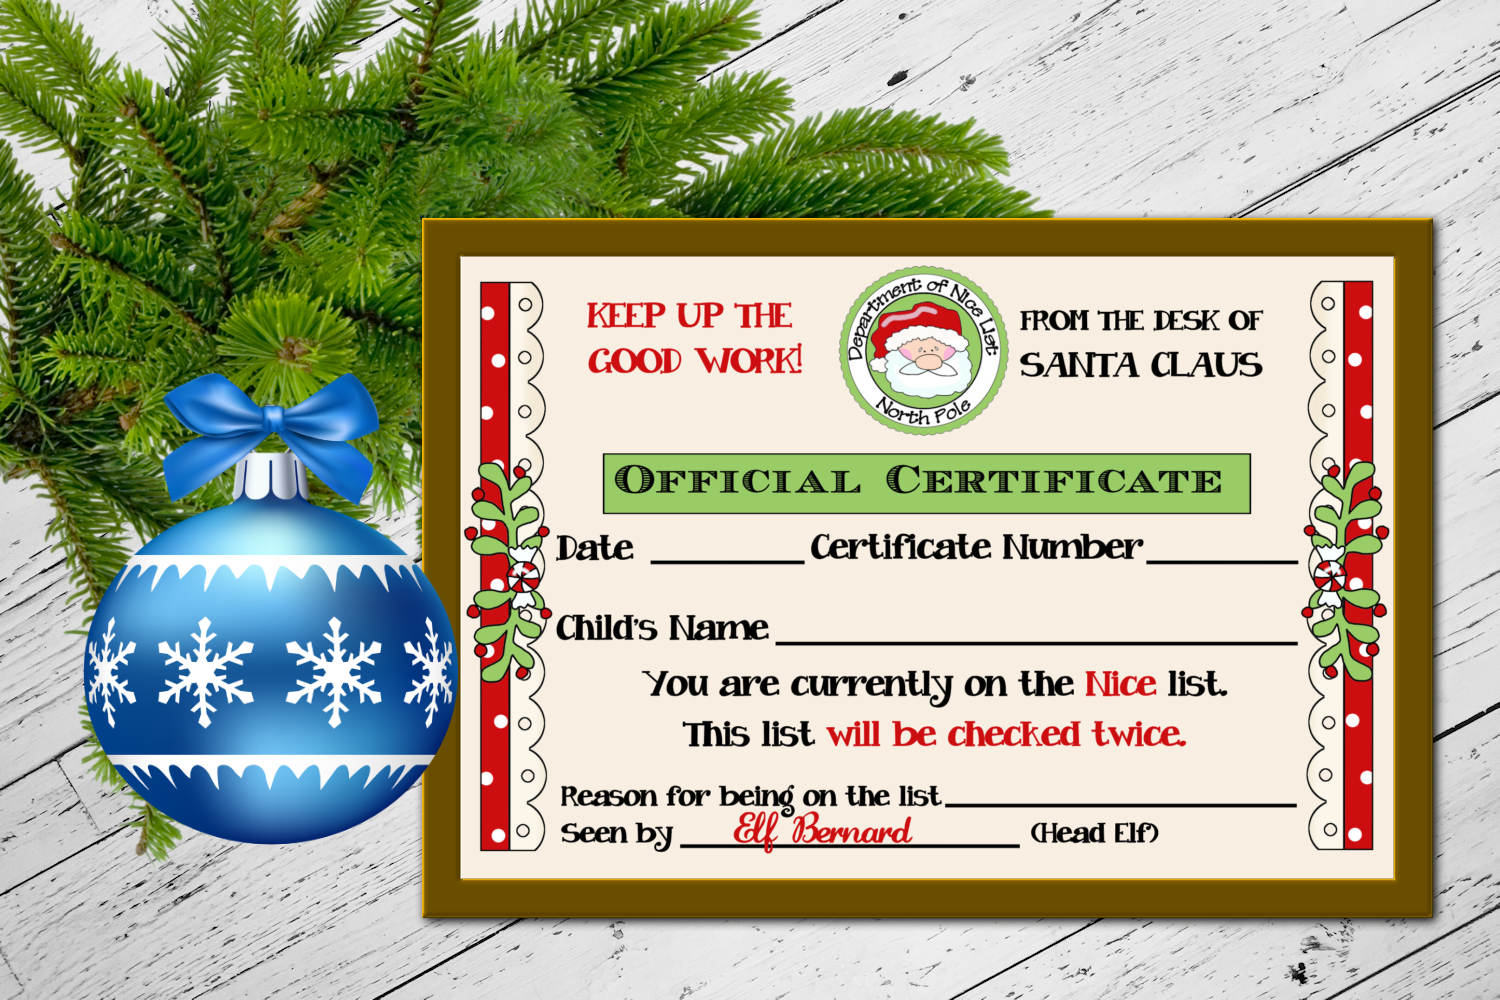 Santa's Nice List Certificate 4 x 6 inches example image 2